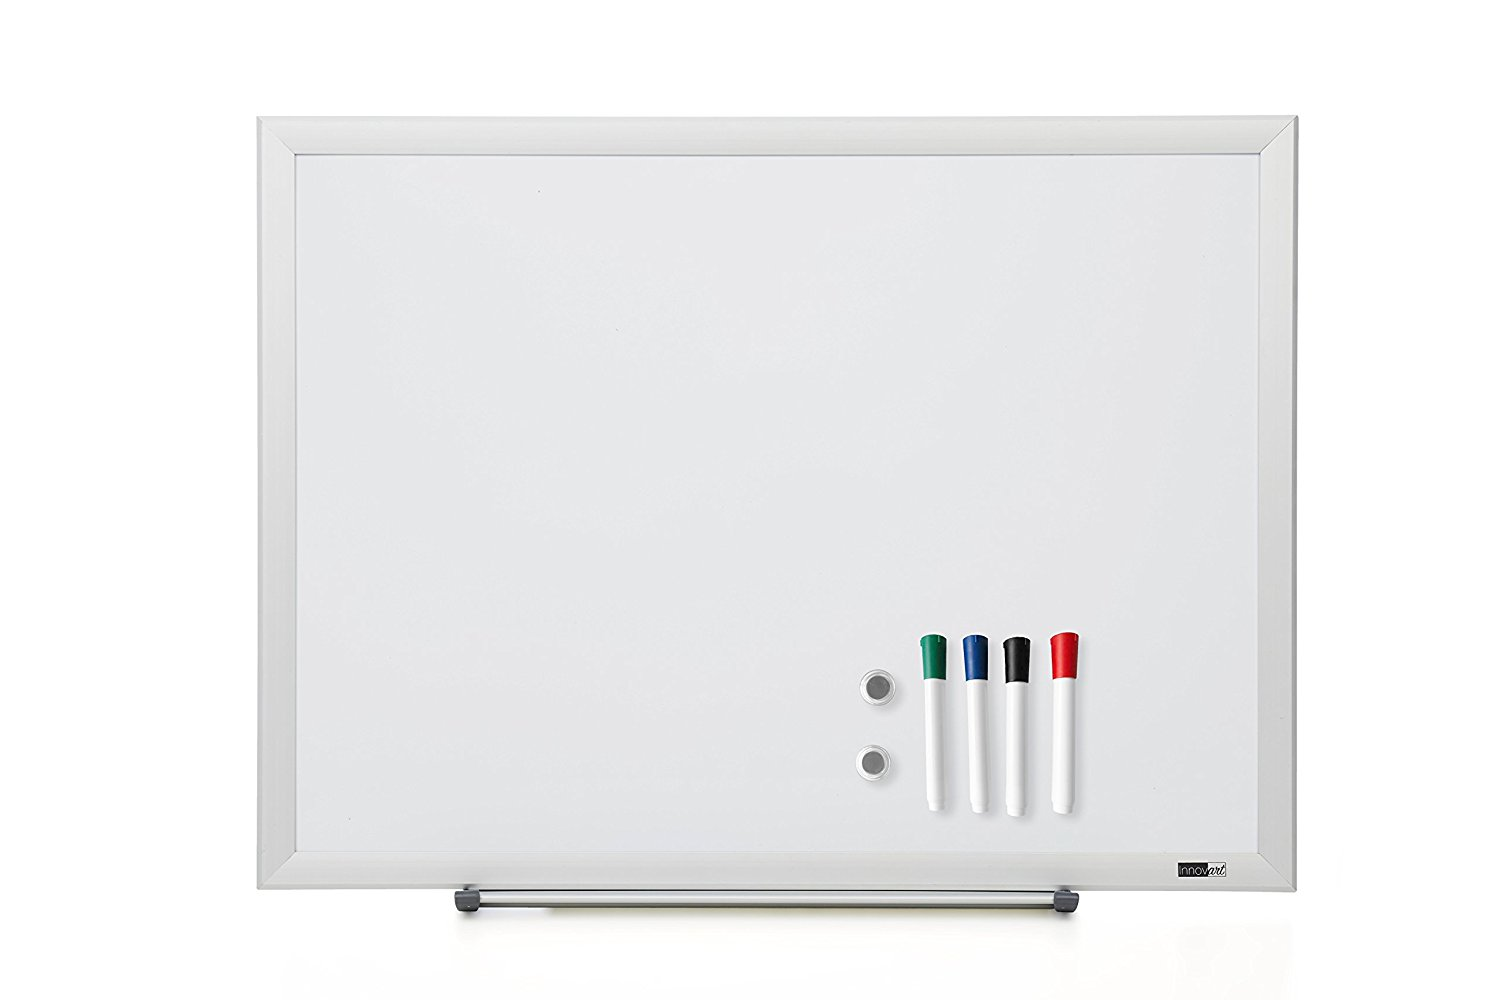 e58d998a6c7 Magnetic 36 x 48 Inch Dry Erase Board Whiteboard 4pcs colorful Dry Erase  Markers and 2pcs